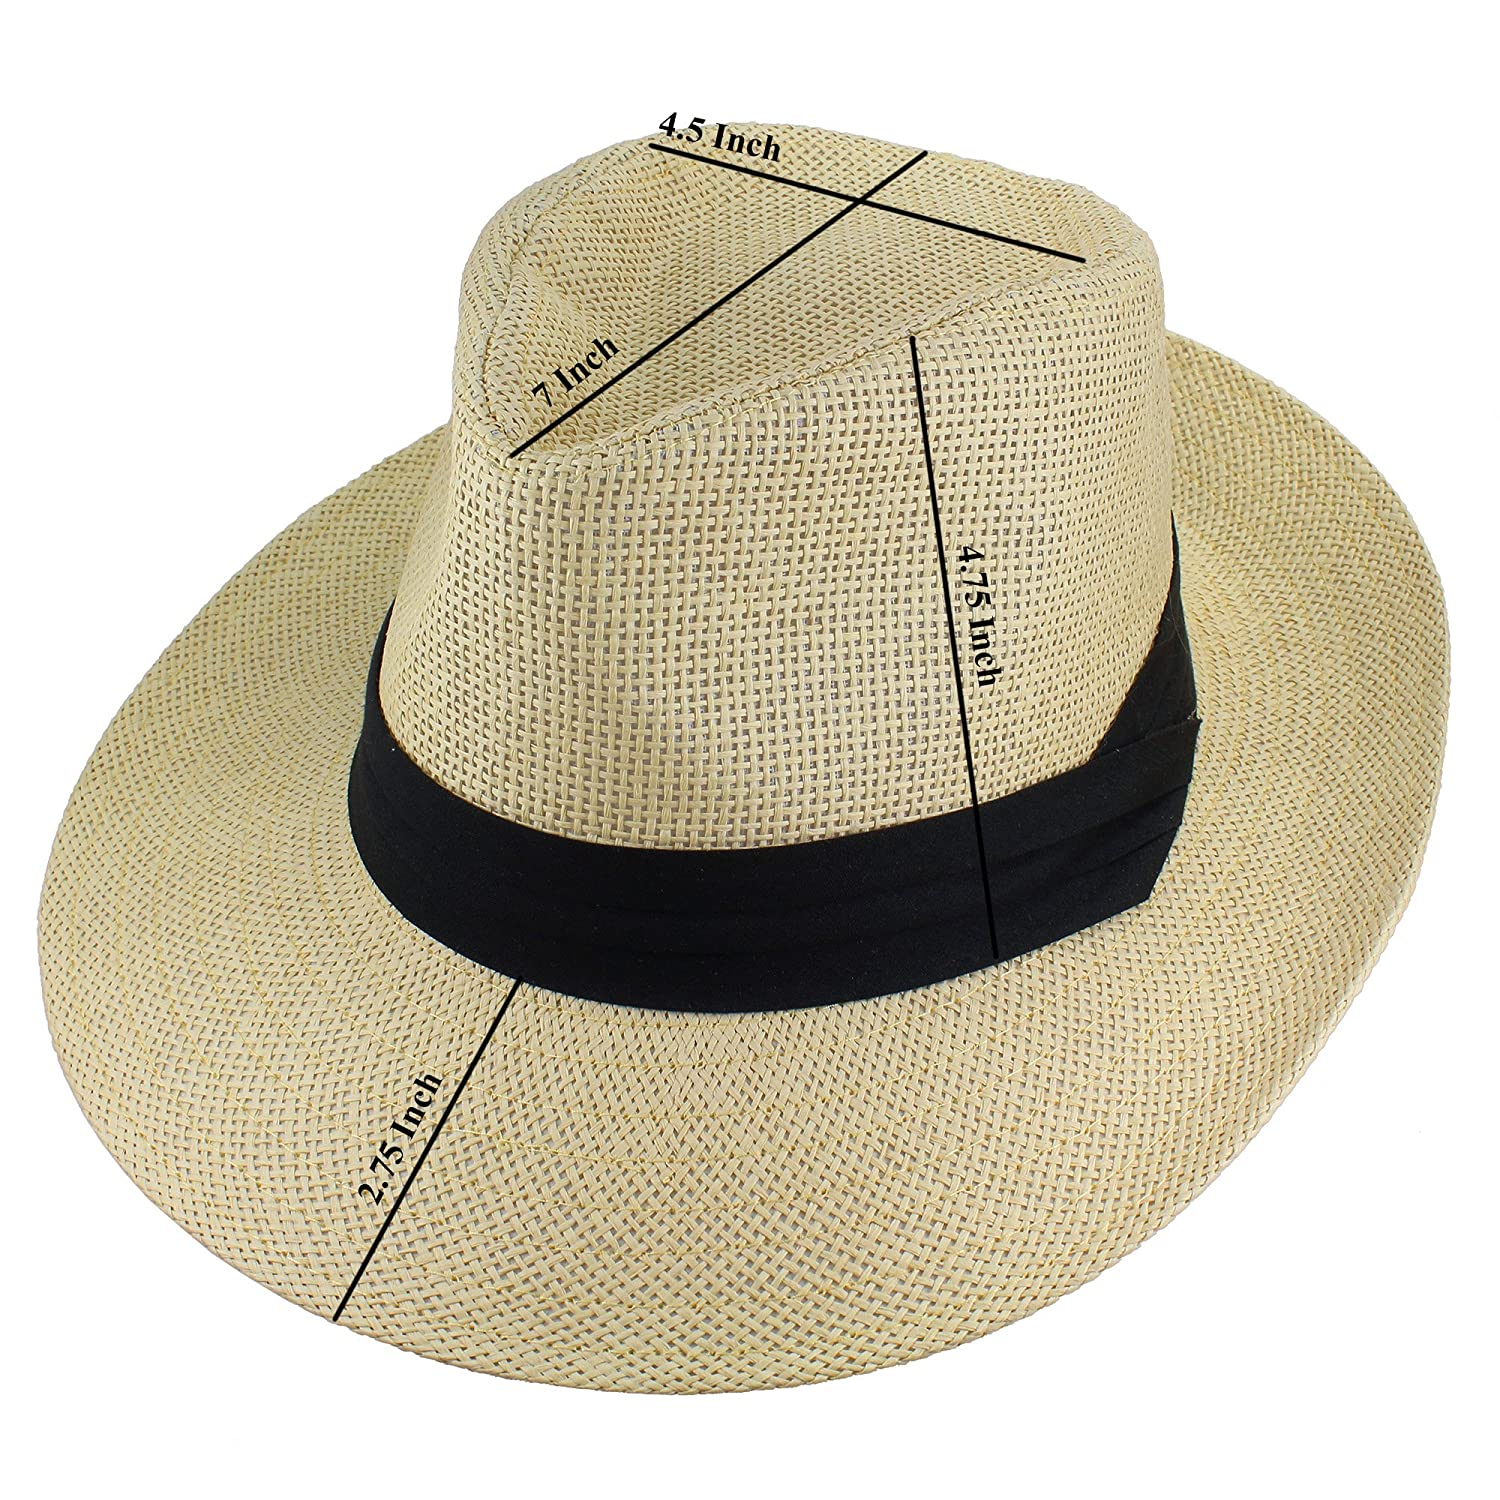 00029a94d795f Gelante Wide Brim Summer Fedora Panama Straw Hats with Black Band at Amazon  Men s Clothing store